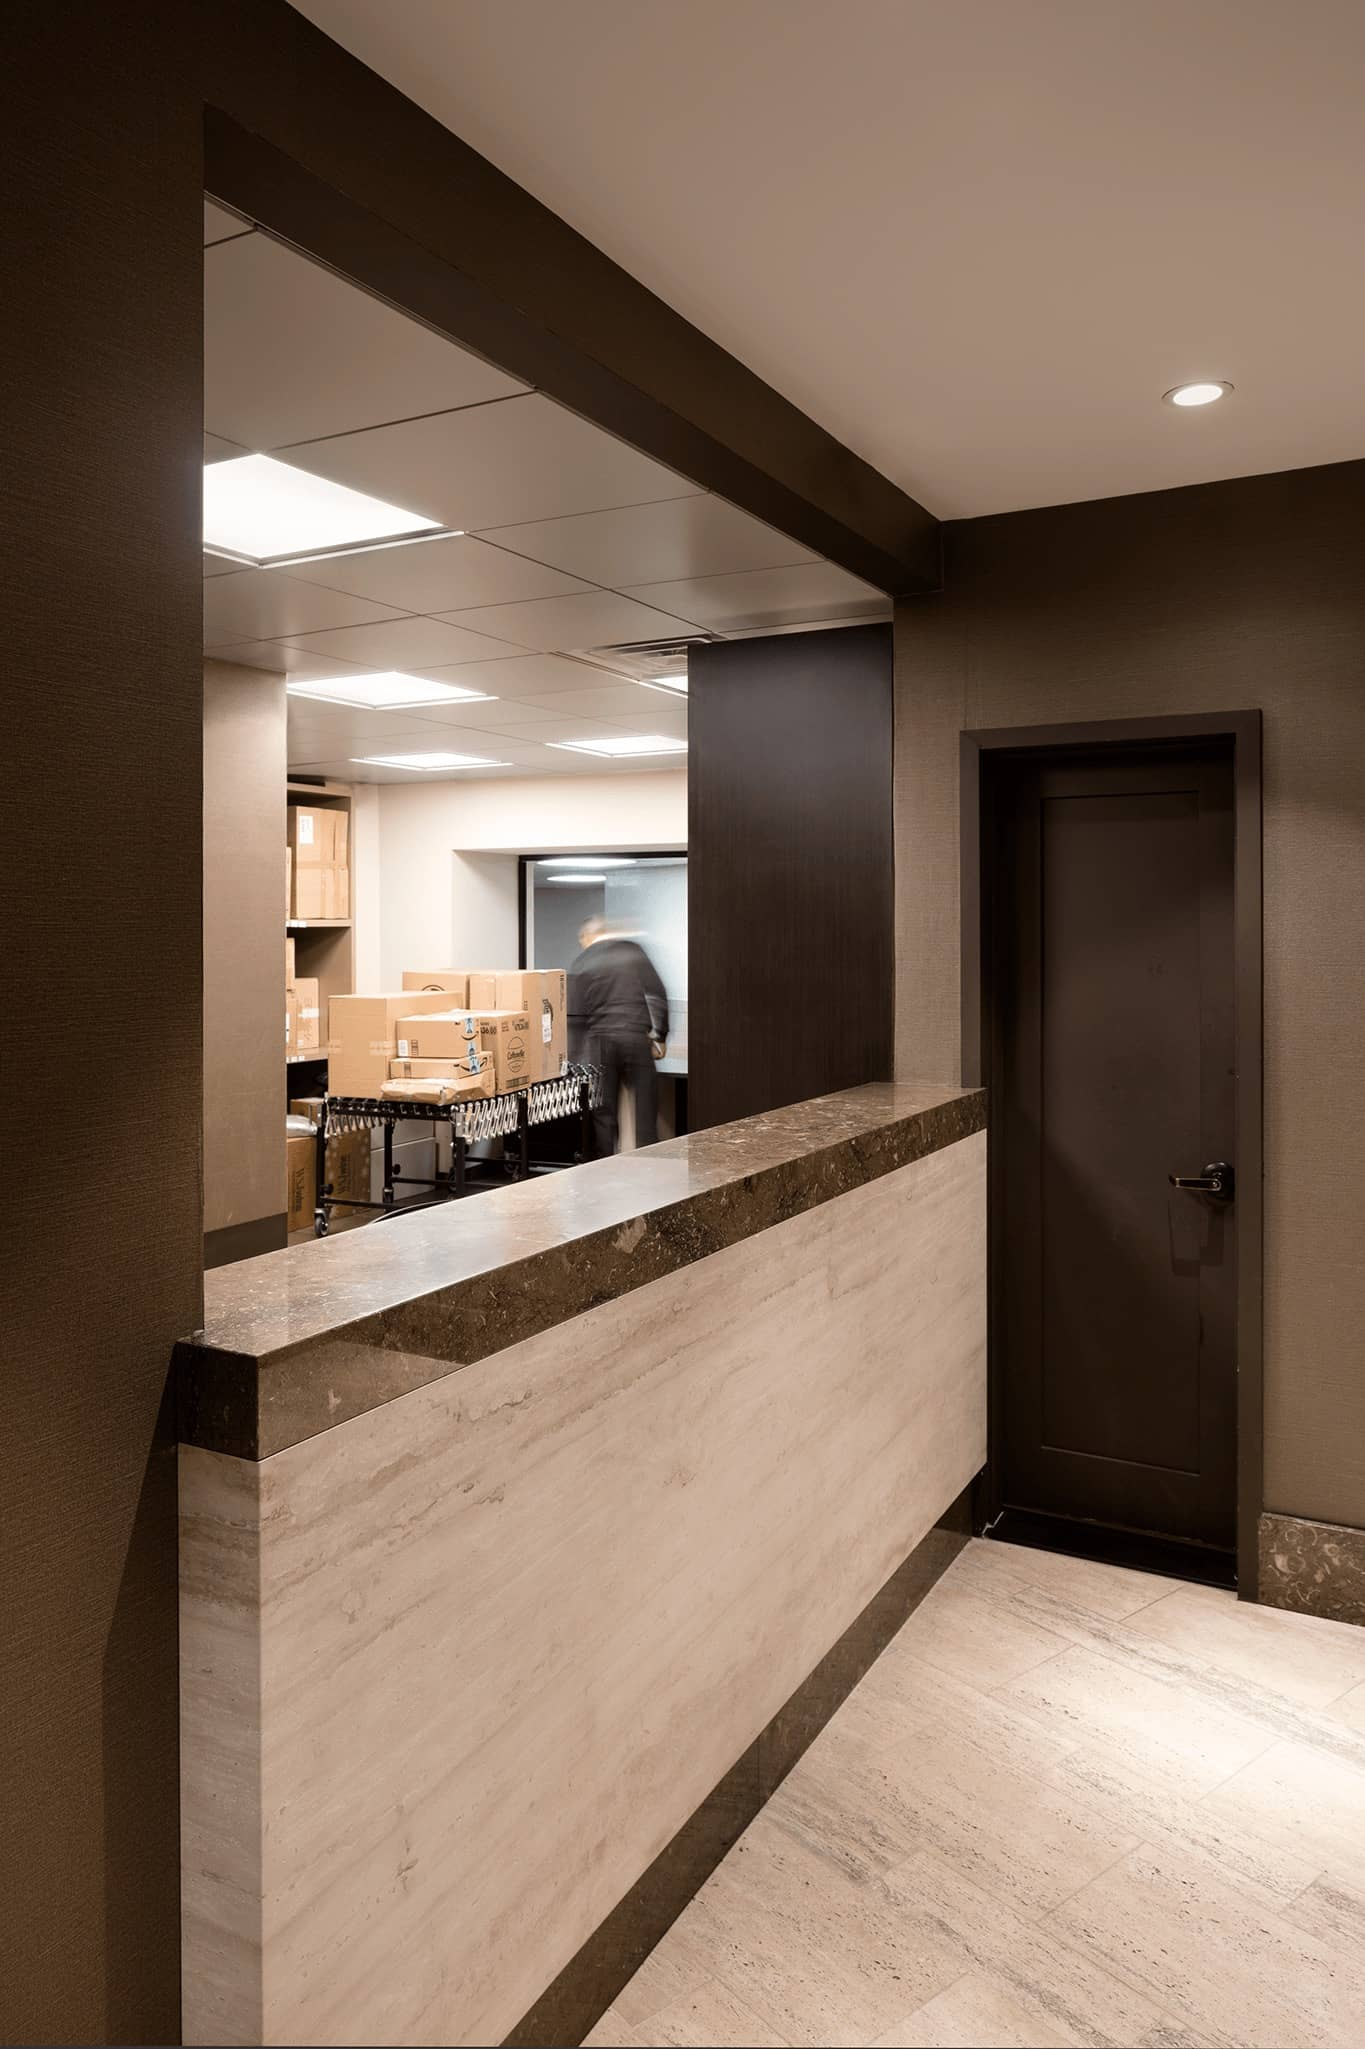 Package room at 1 Lincoln Plaza